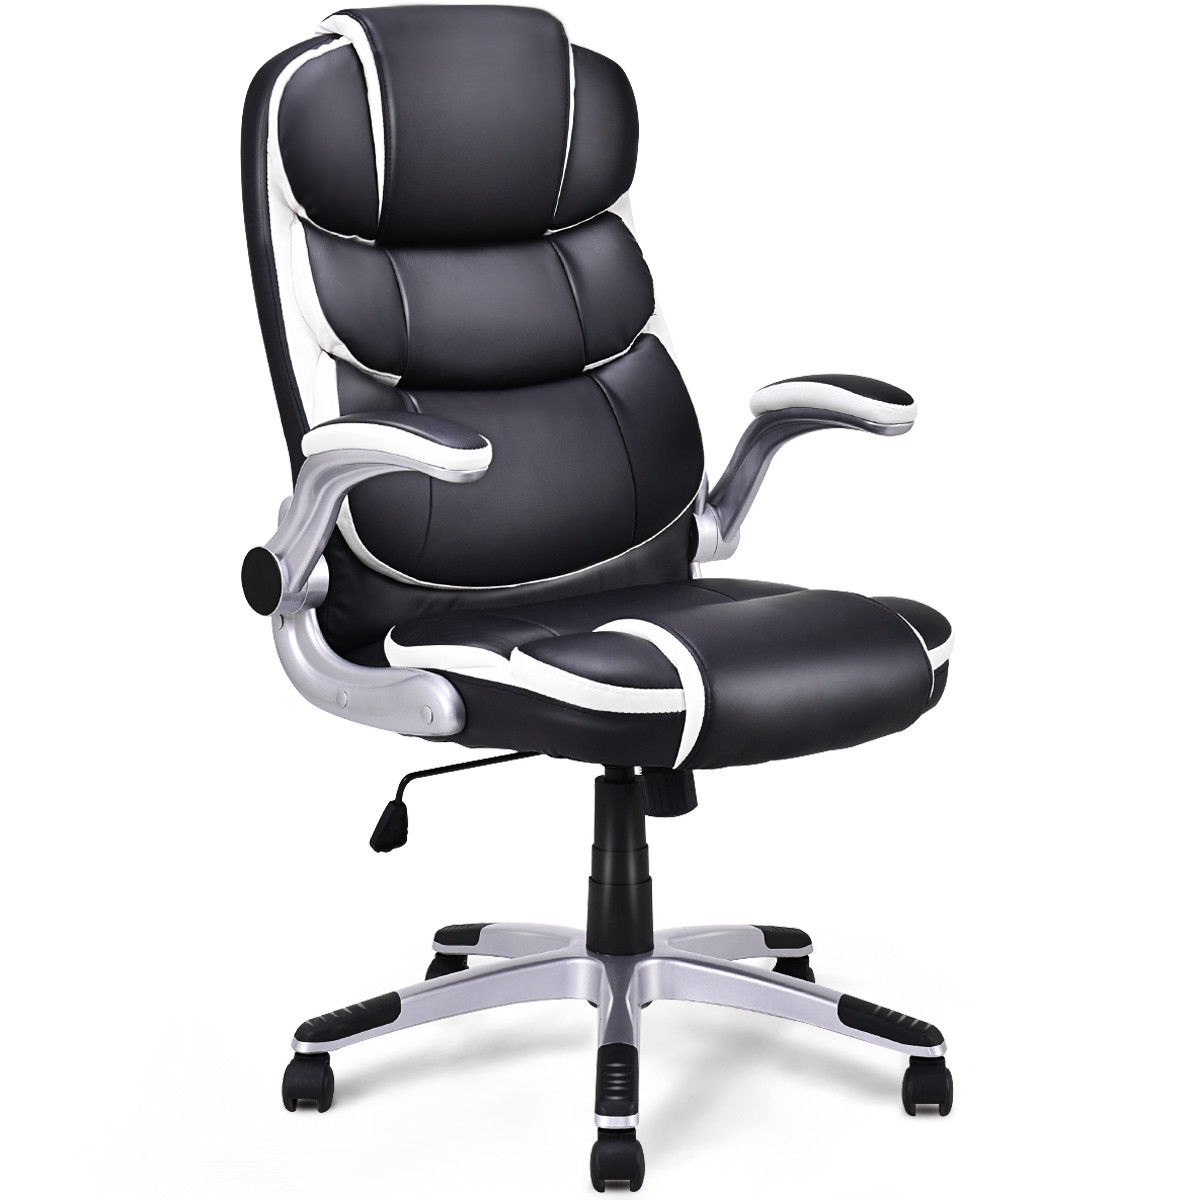 Giantex PU Leather High Back Executive Office Chair Modern ...